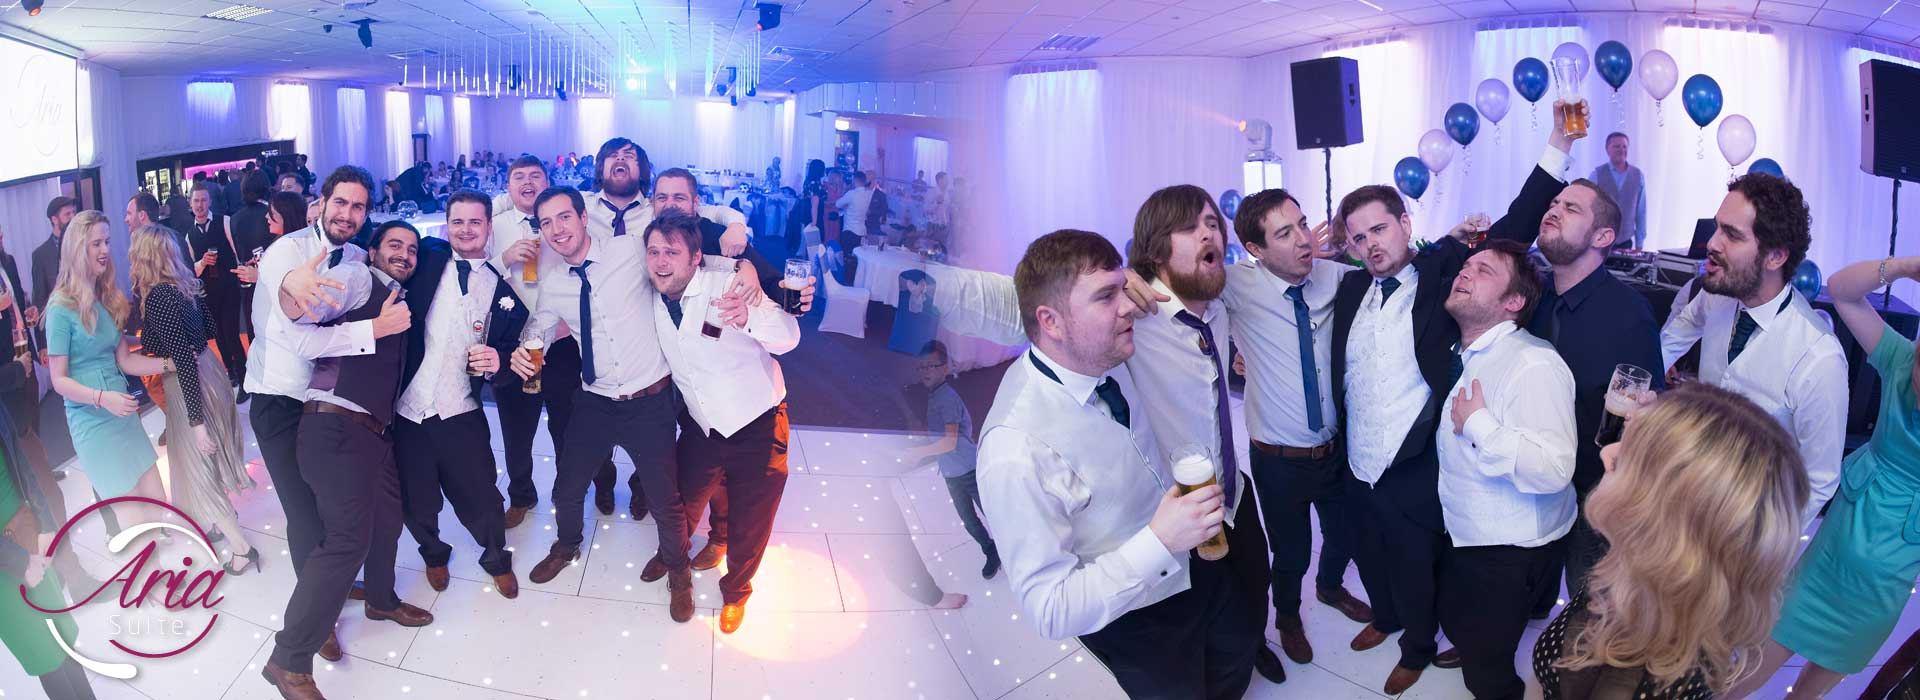 Venues for hire in Leeds